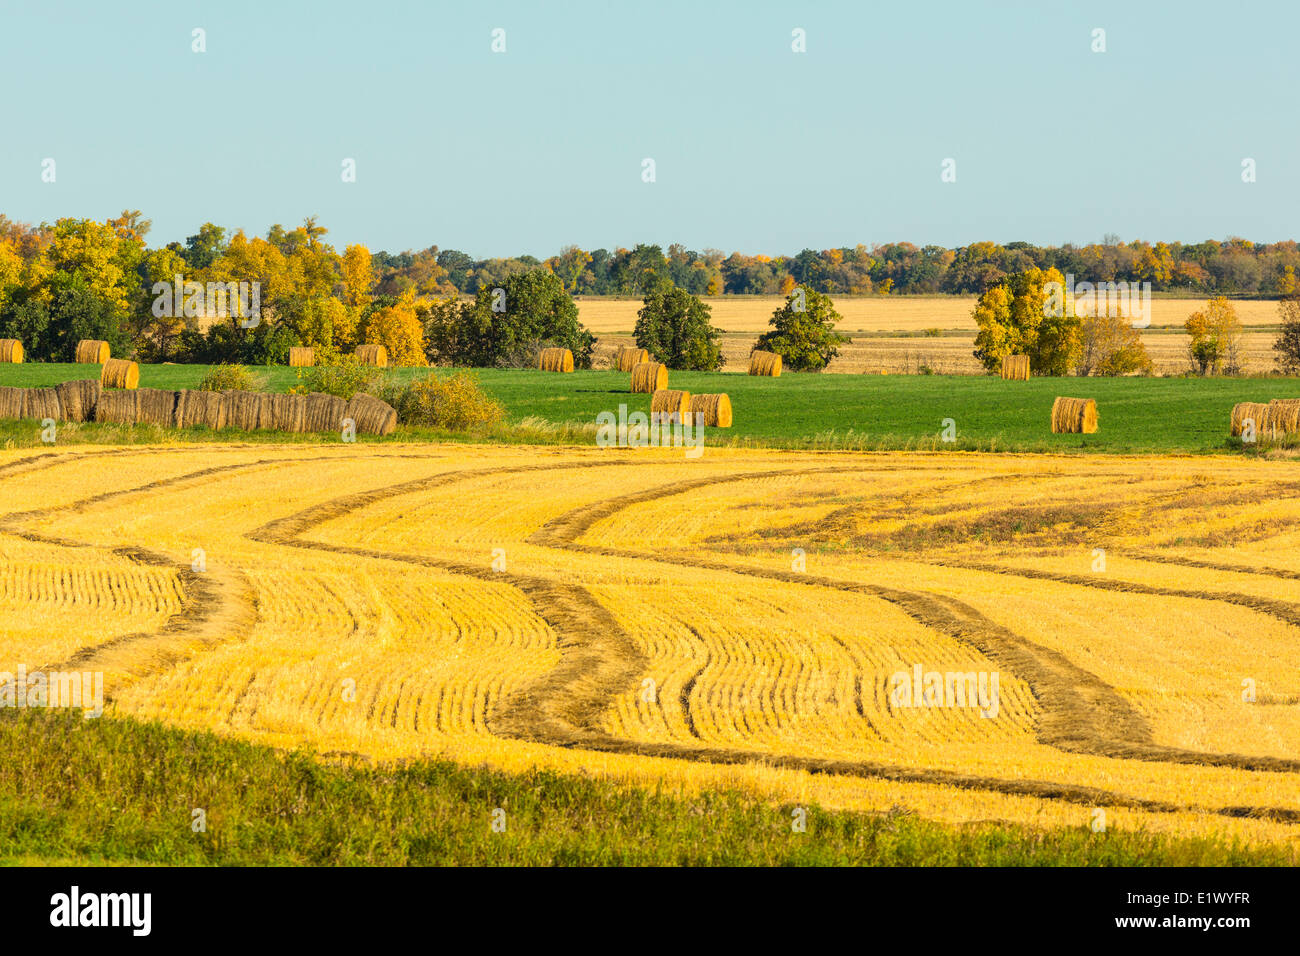 Baled hay and cut wheatfield, Thompson, Manitoba, Canada - Stock Image